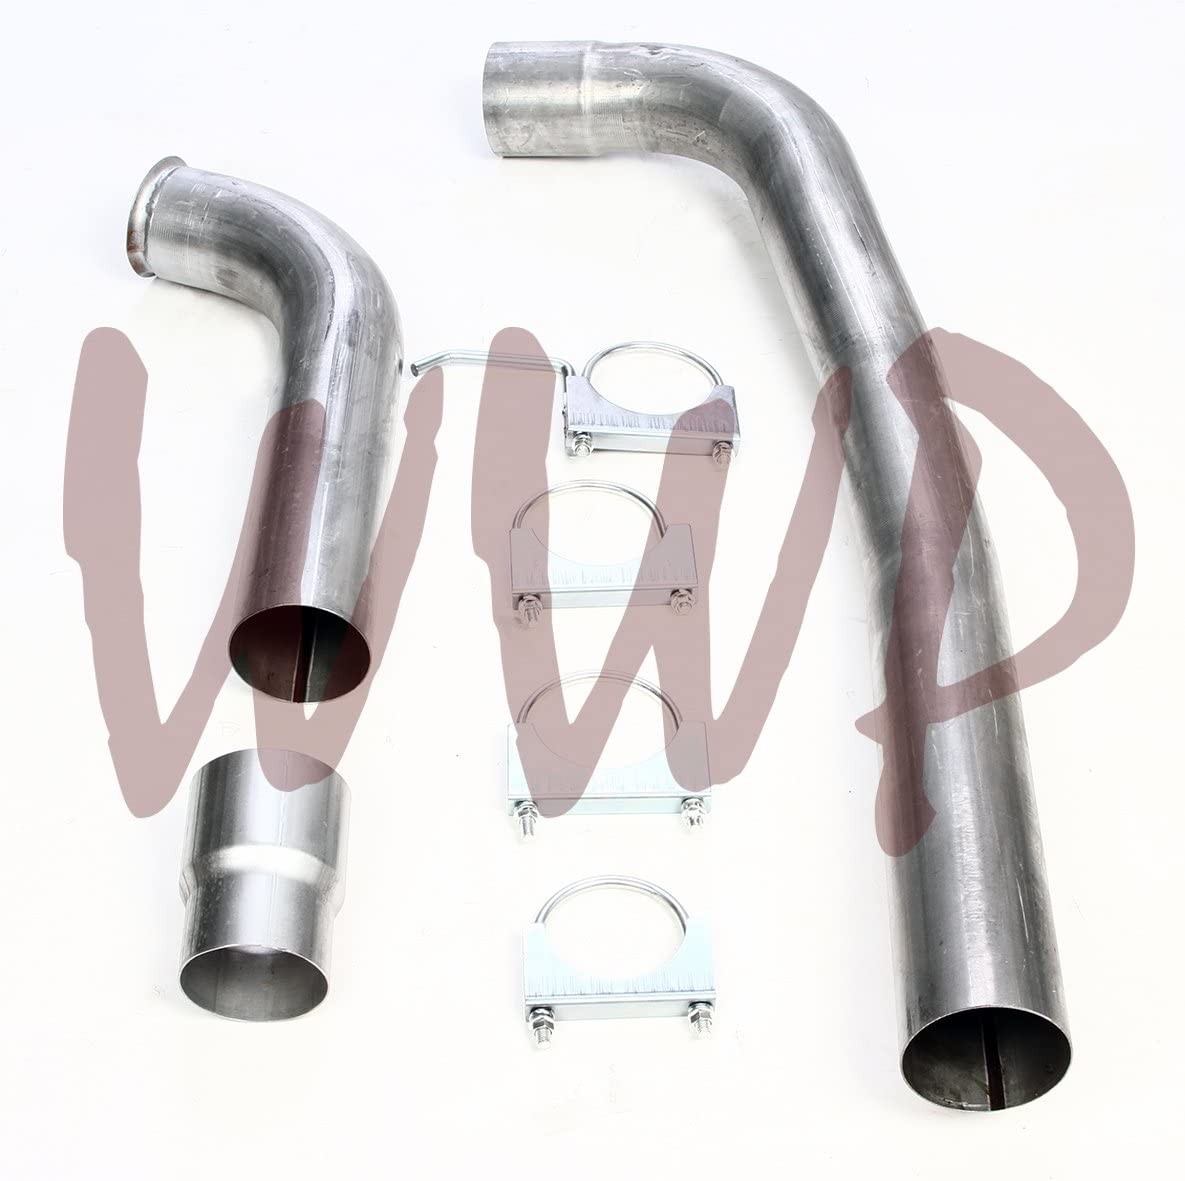 Performance 5 Stainless Steel Pipe Kit Turbo Back Exhaust System For 99-03 Ford F250 F350 Powerstroke 7.3L Diesel Pickup Truck